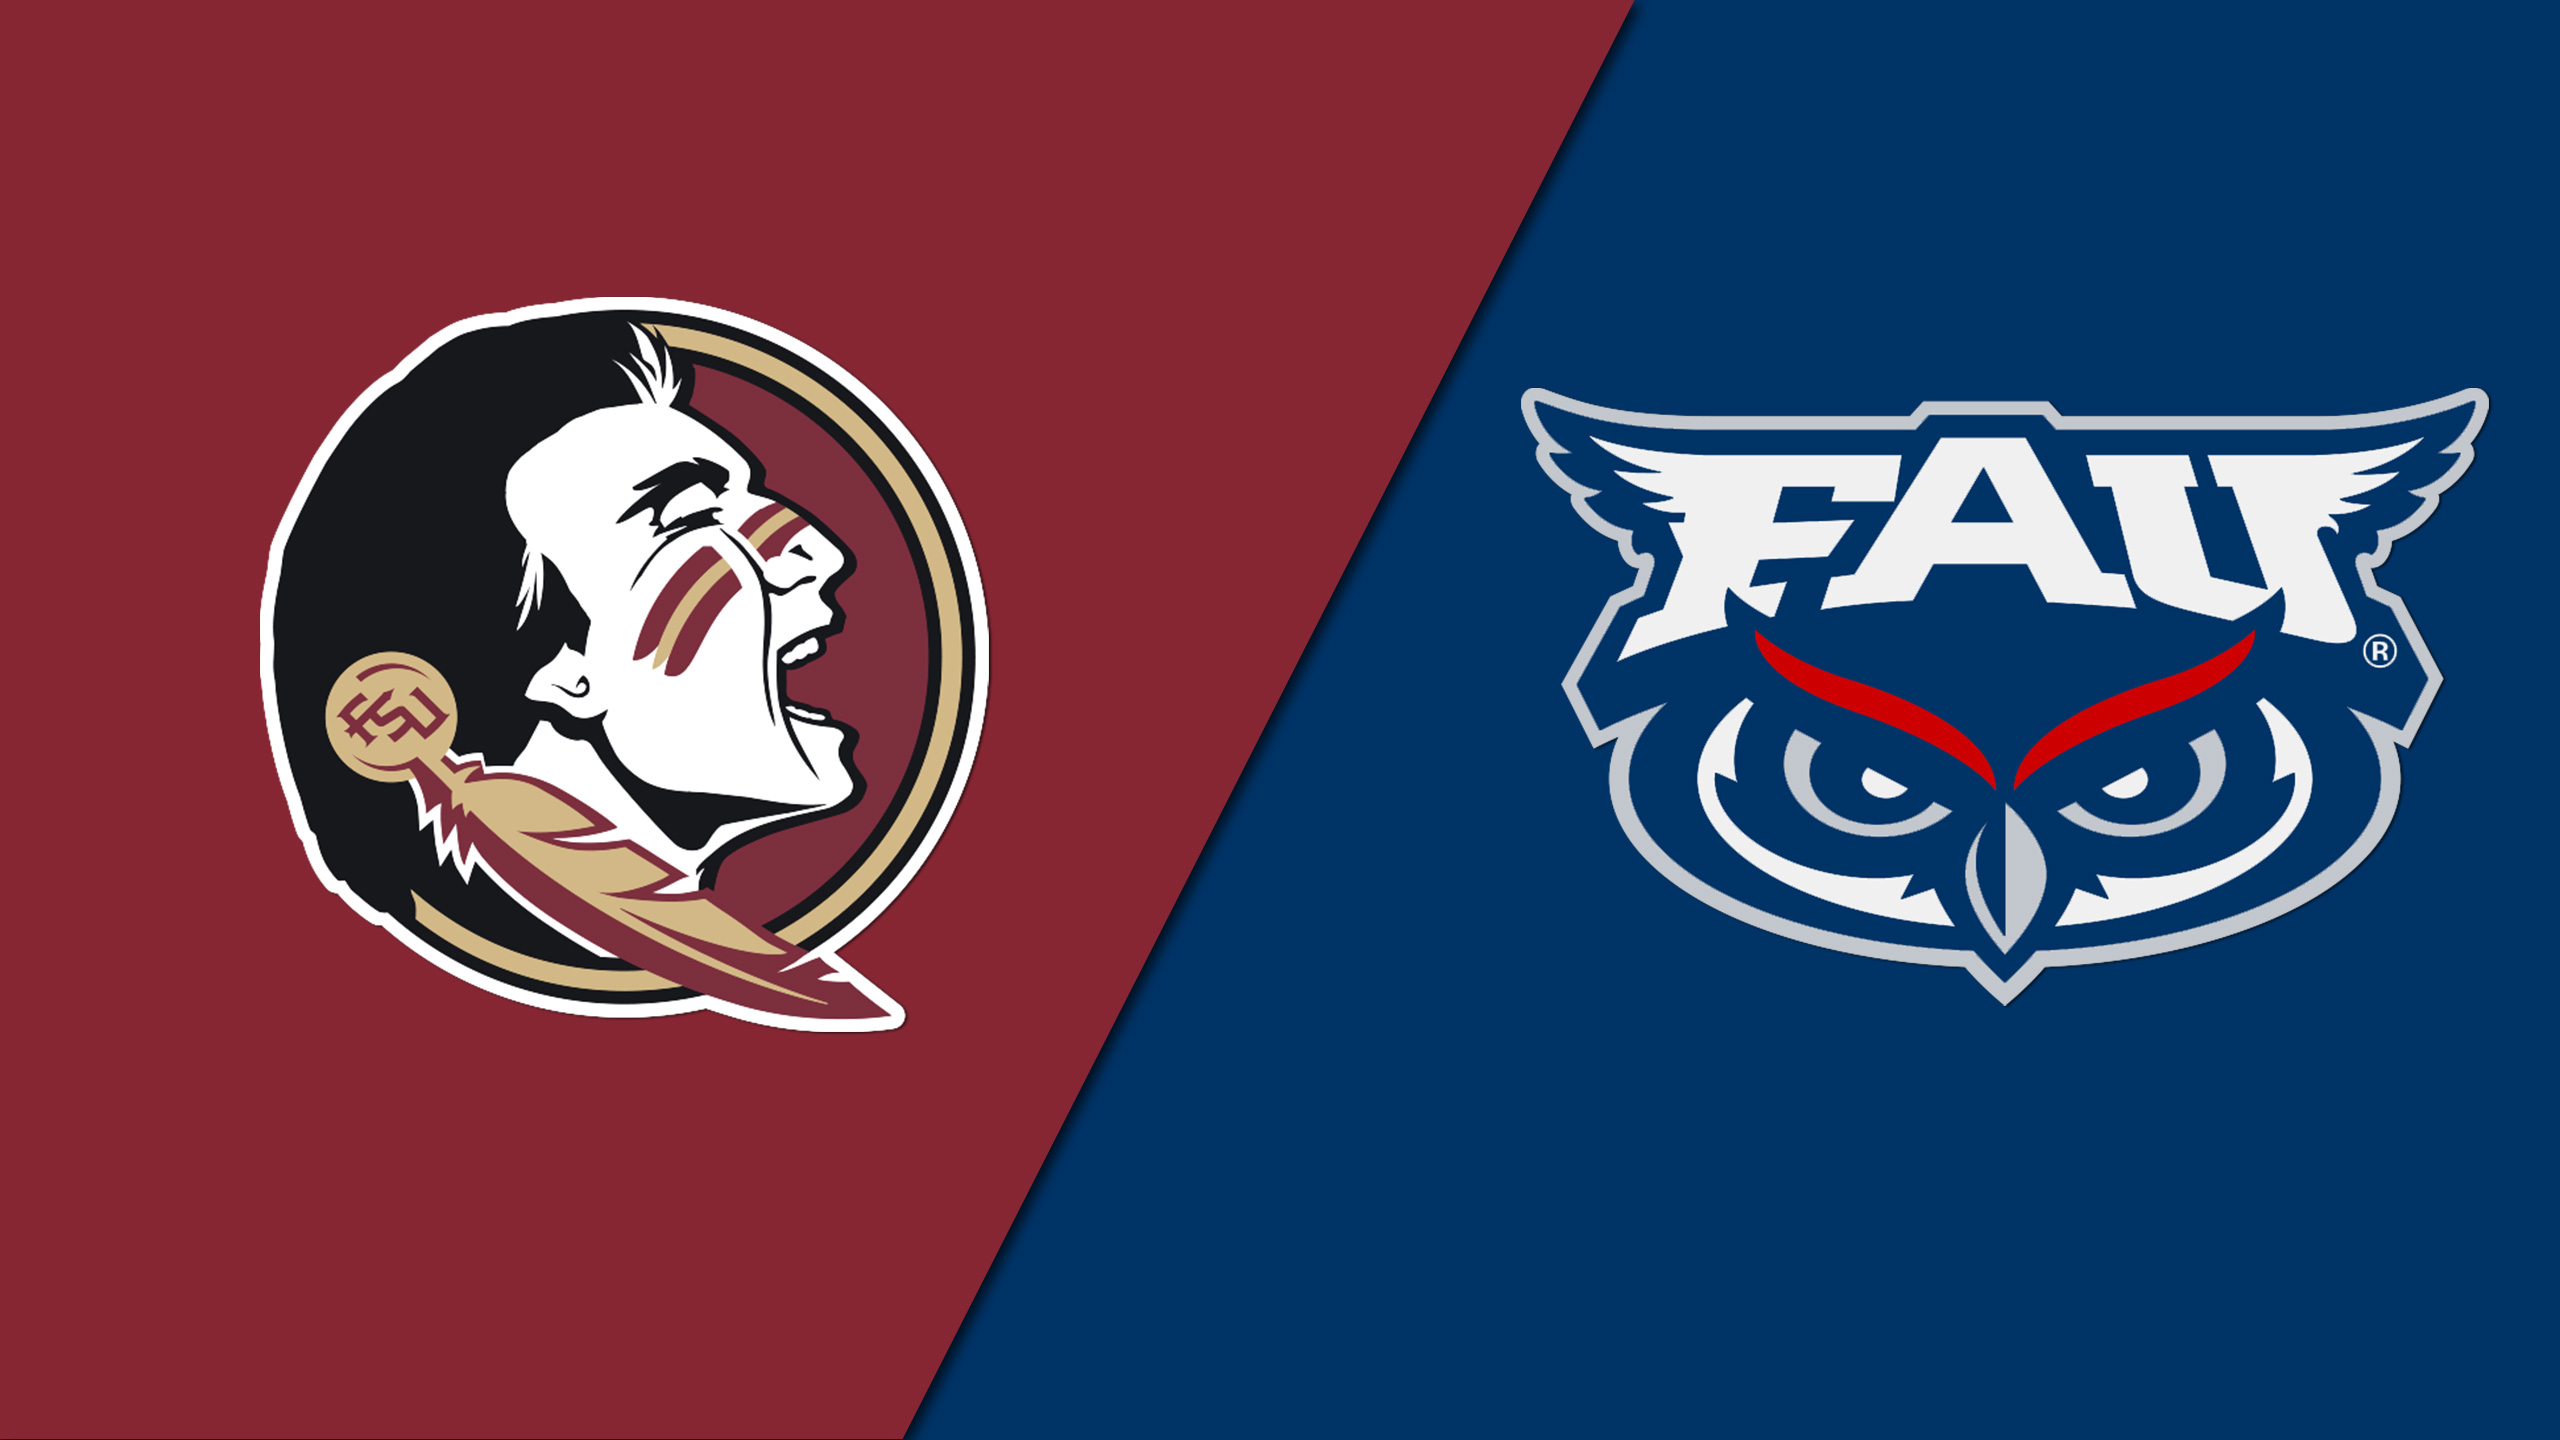 #2 Florida State vs. Florida Atlantic (Softball)